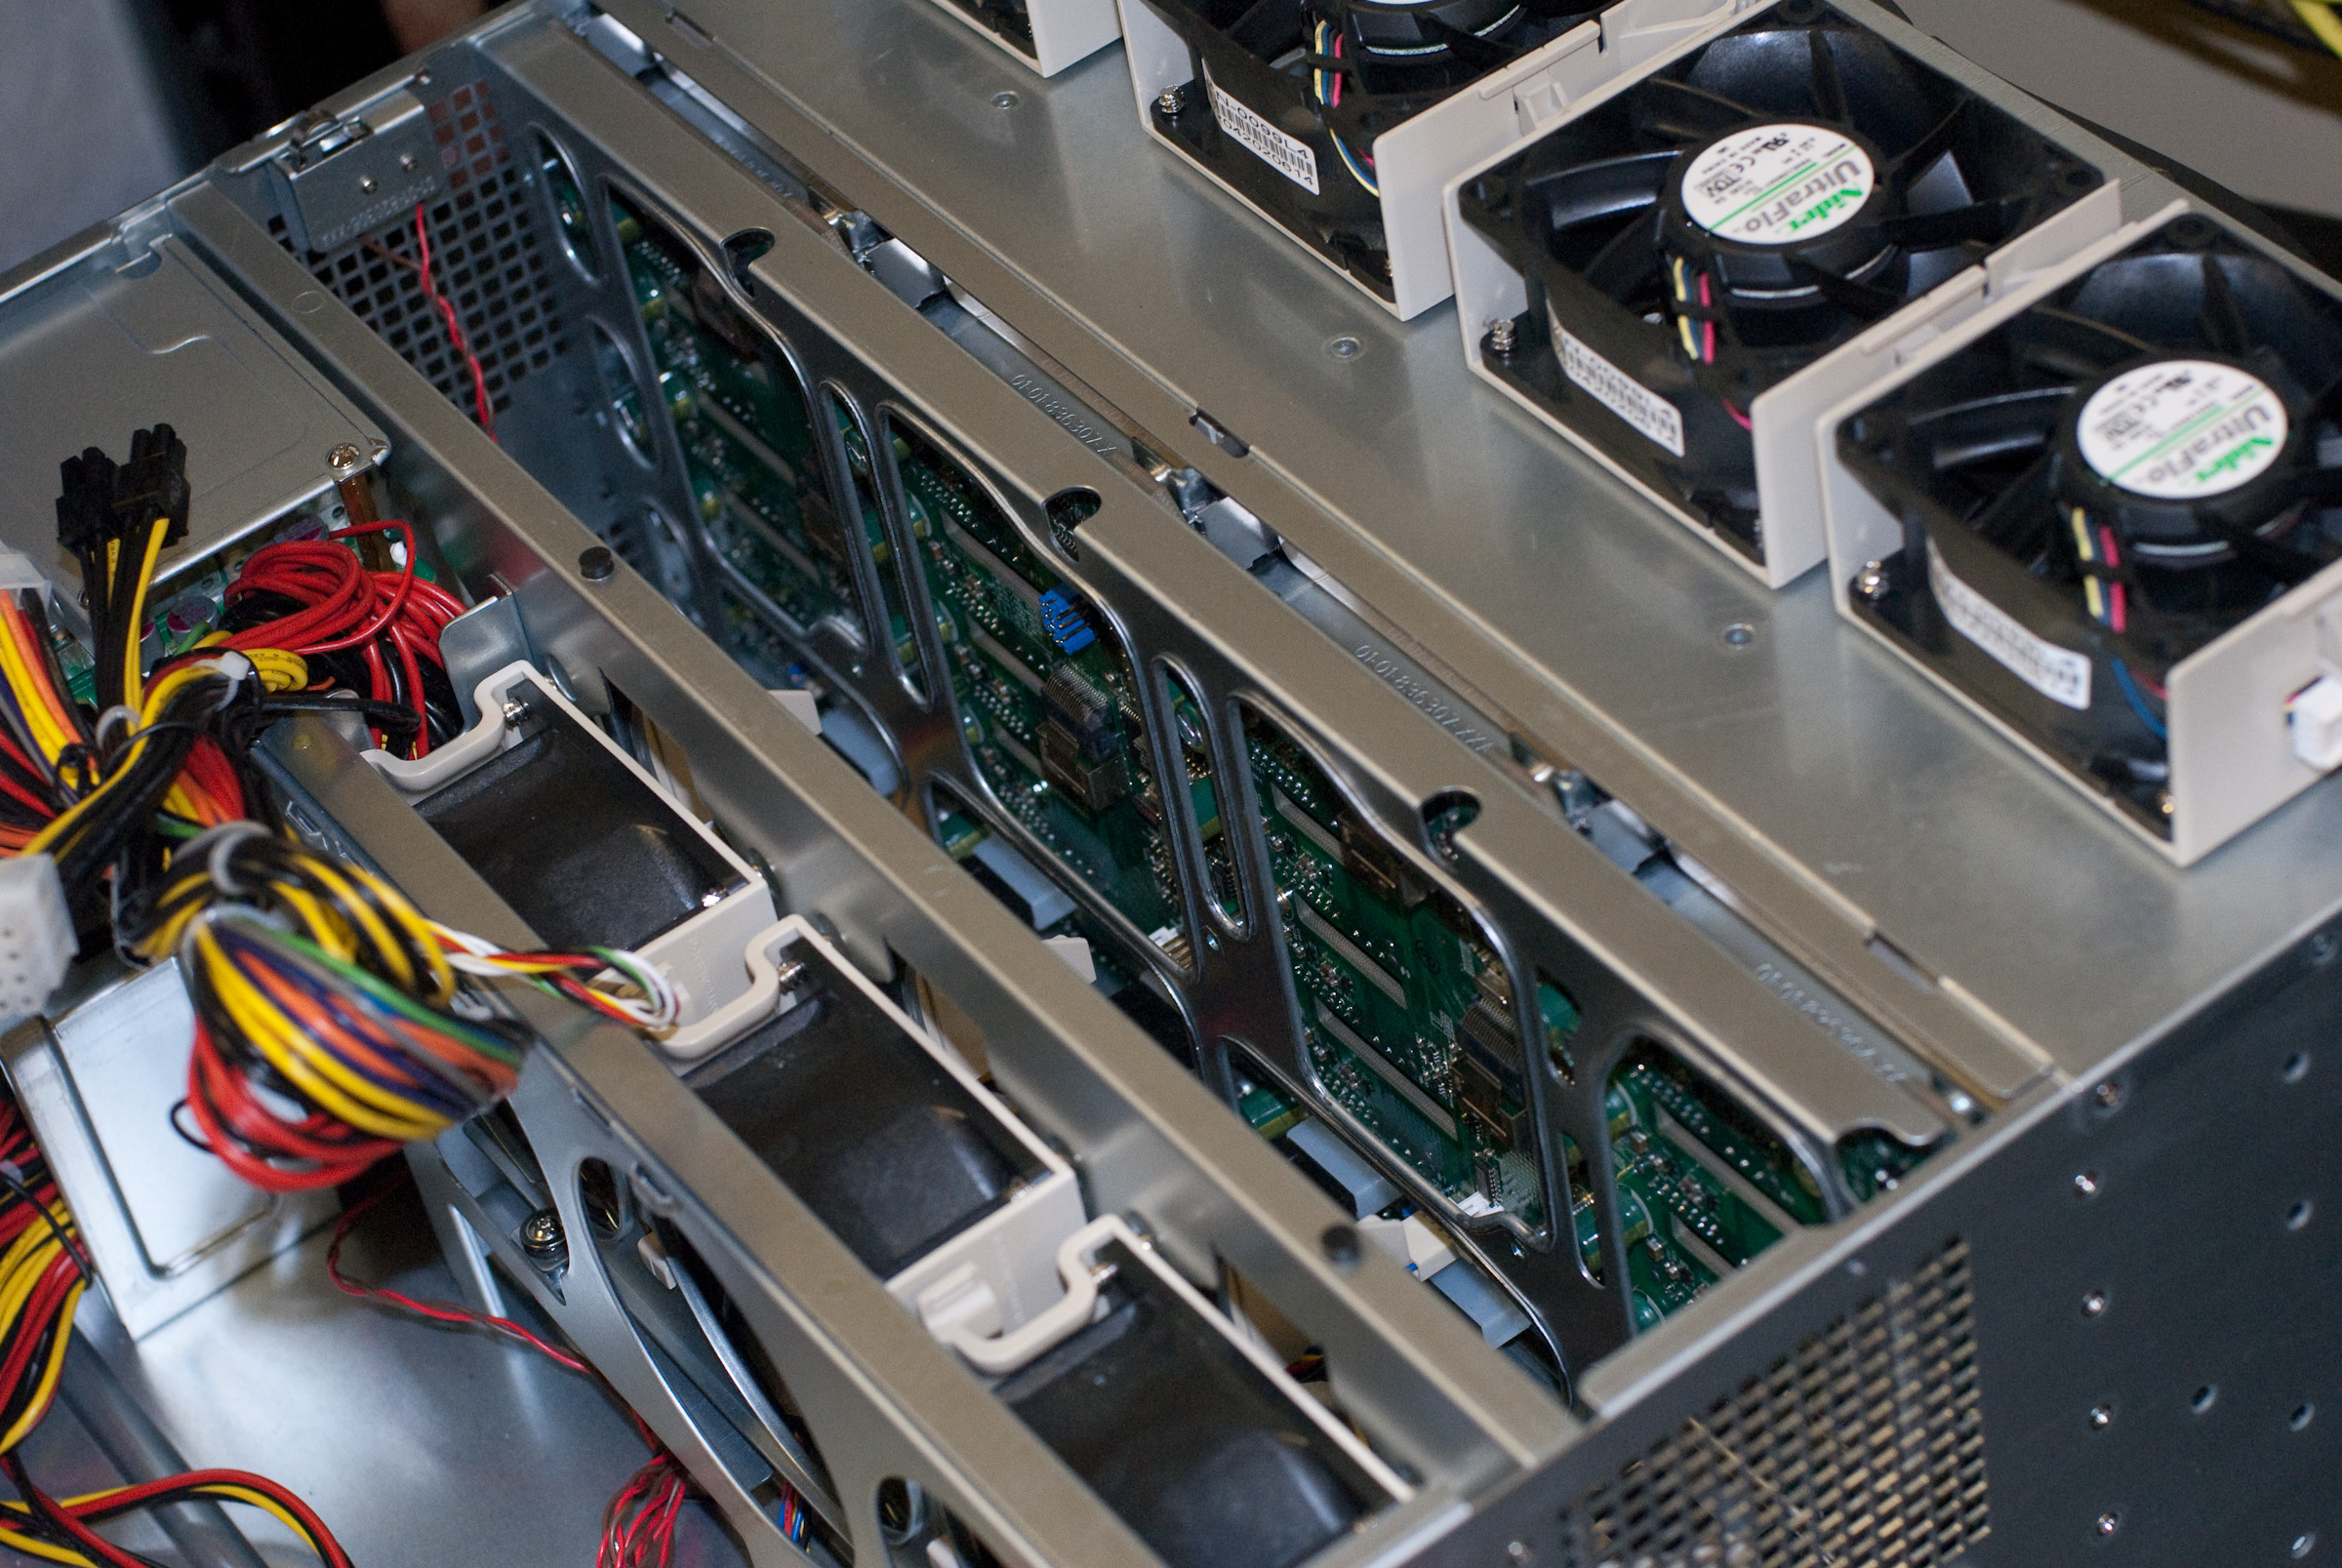 Hardware Supermicros Sc847a 4u Chassis With 36 Drive Bays Jbod Wiring Diagram Supermicro R1400lpb Front Backplane